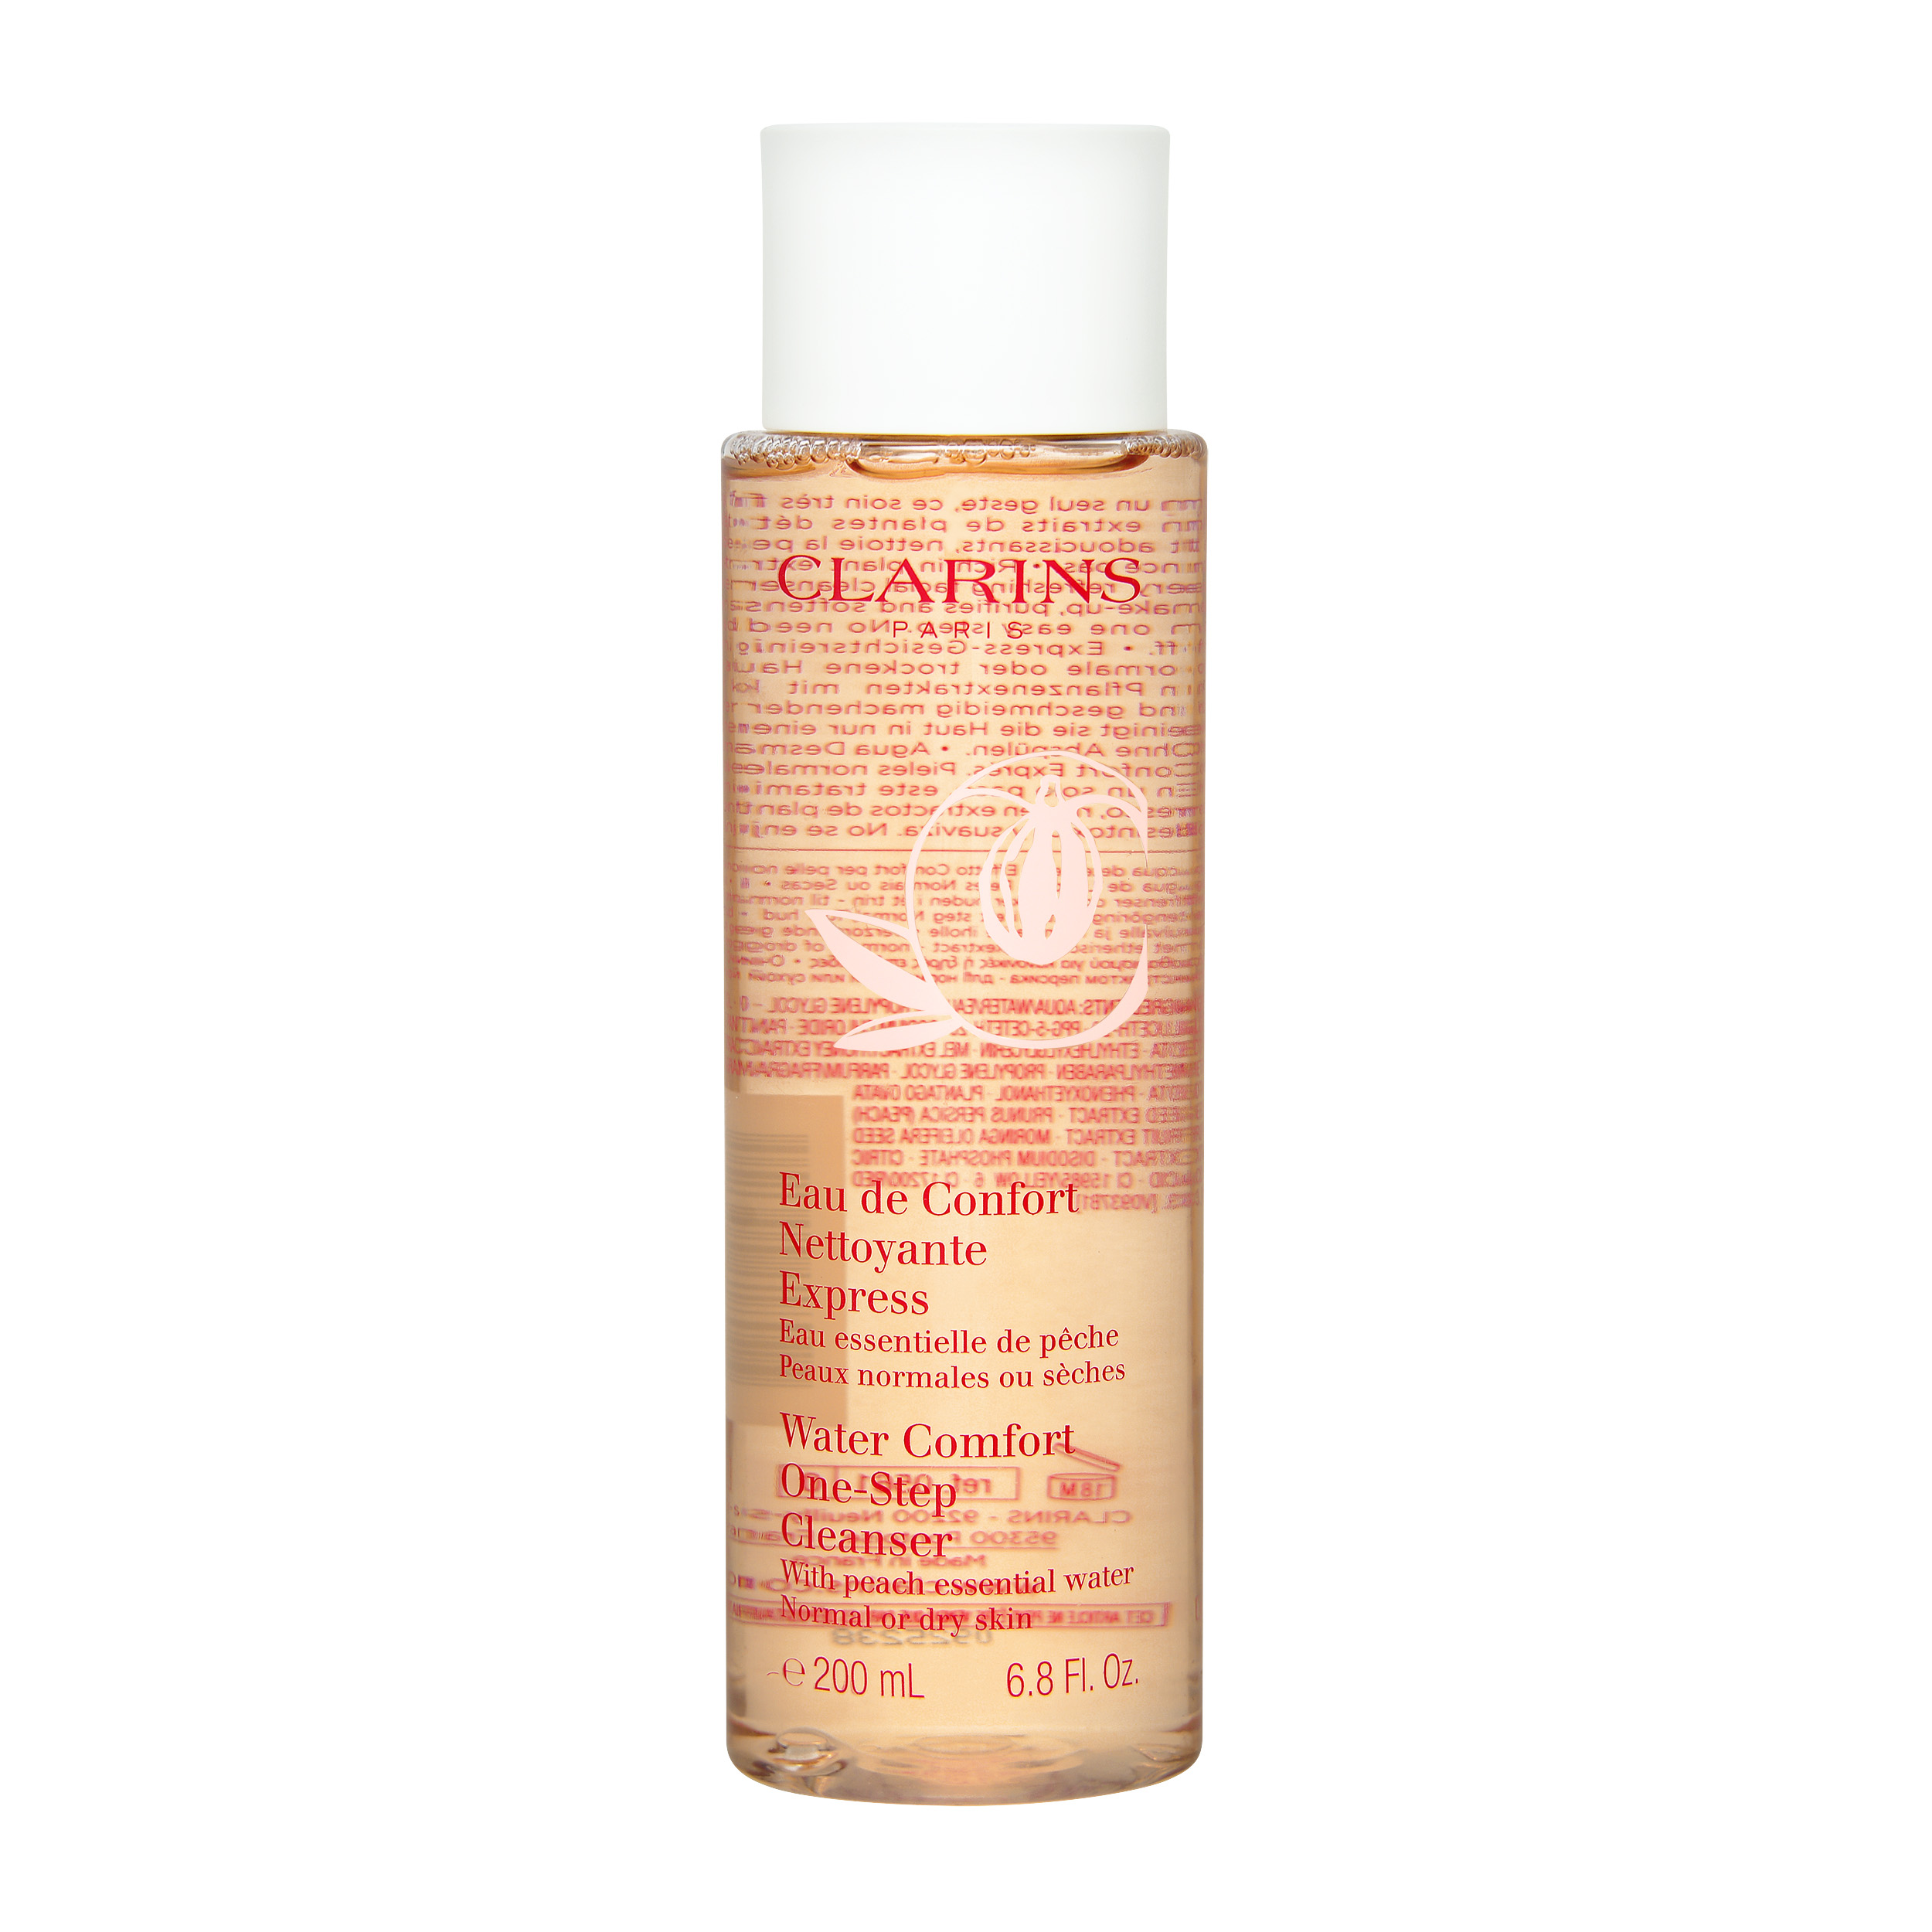 Clarins  Water Comfort One-Step Cleanser (Normal or Dry Skin) 6.8oz, 200ml from Cosme-De.com